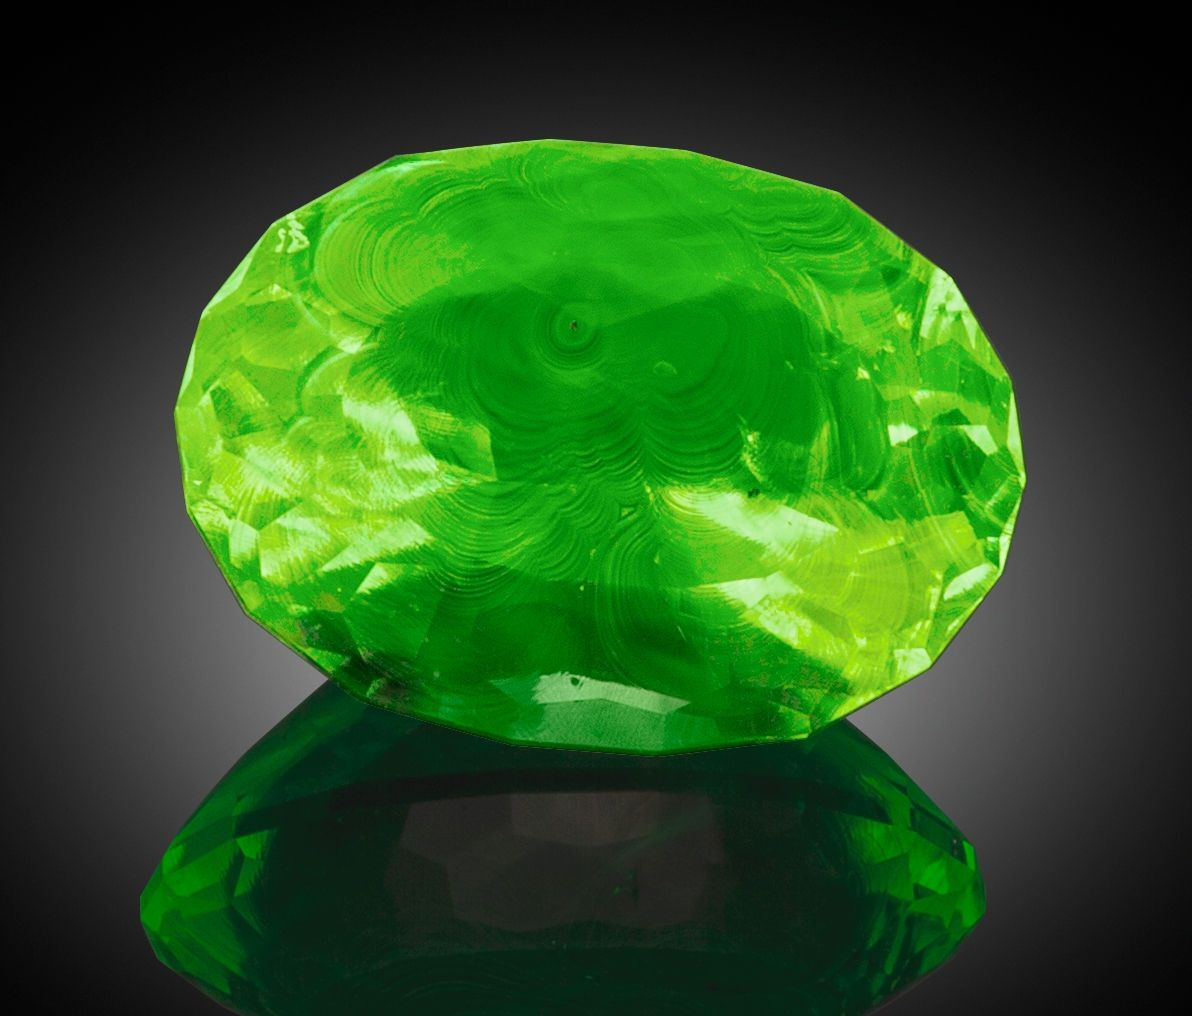 in the of life gemstone gemstones rarest world rare image pics